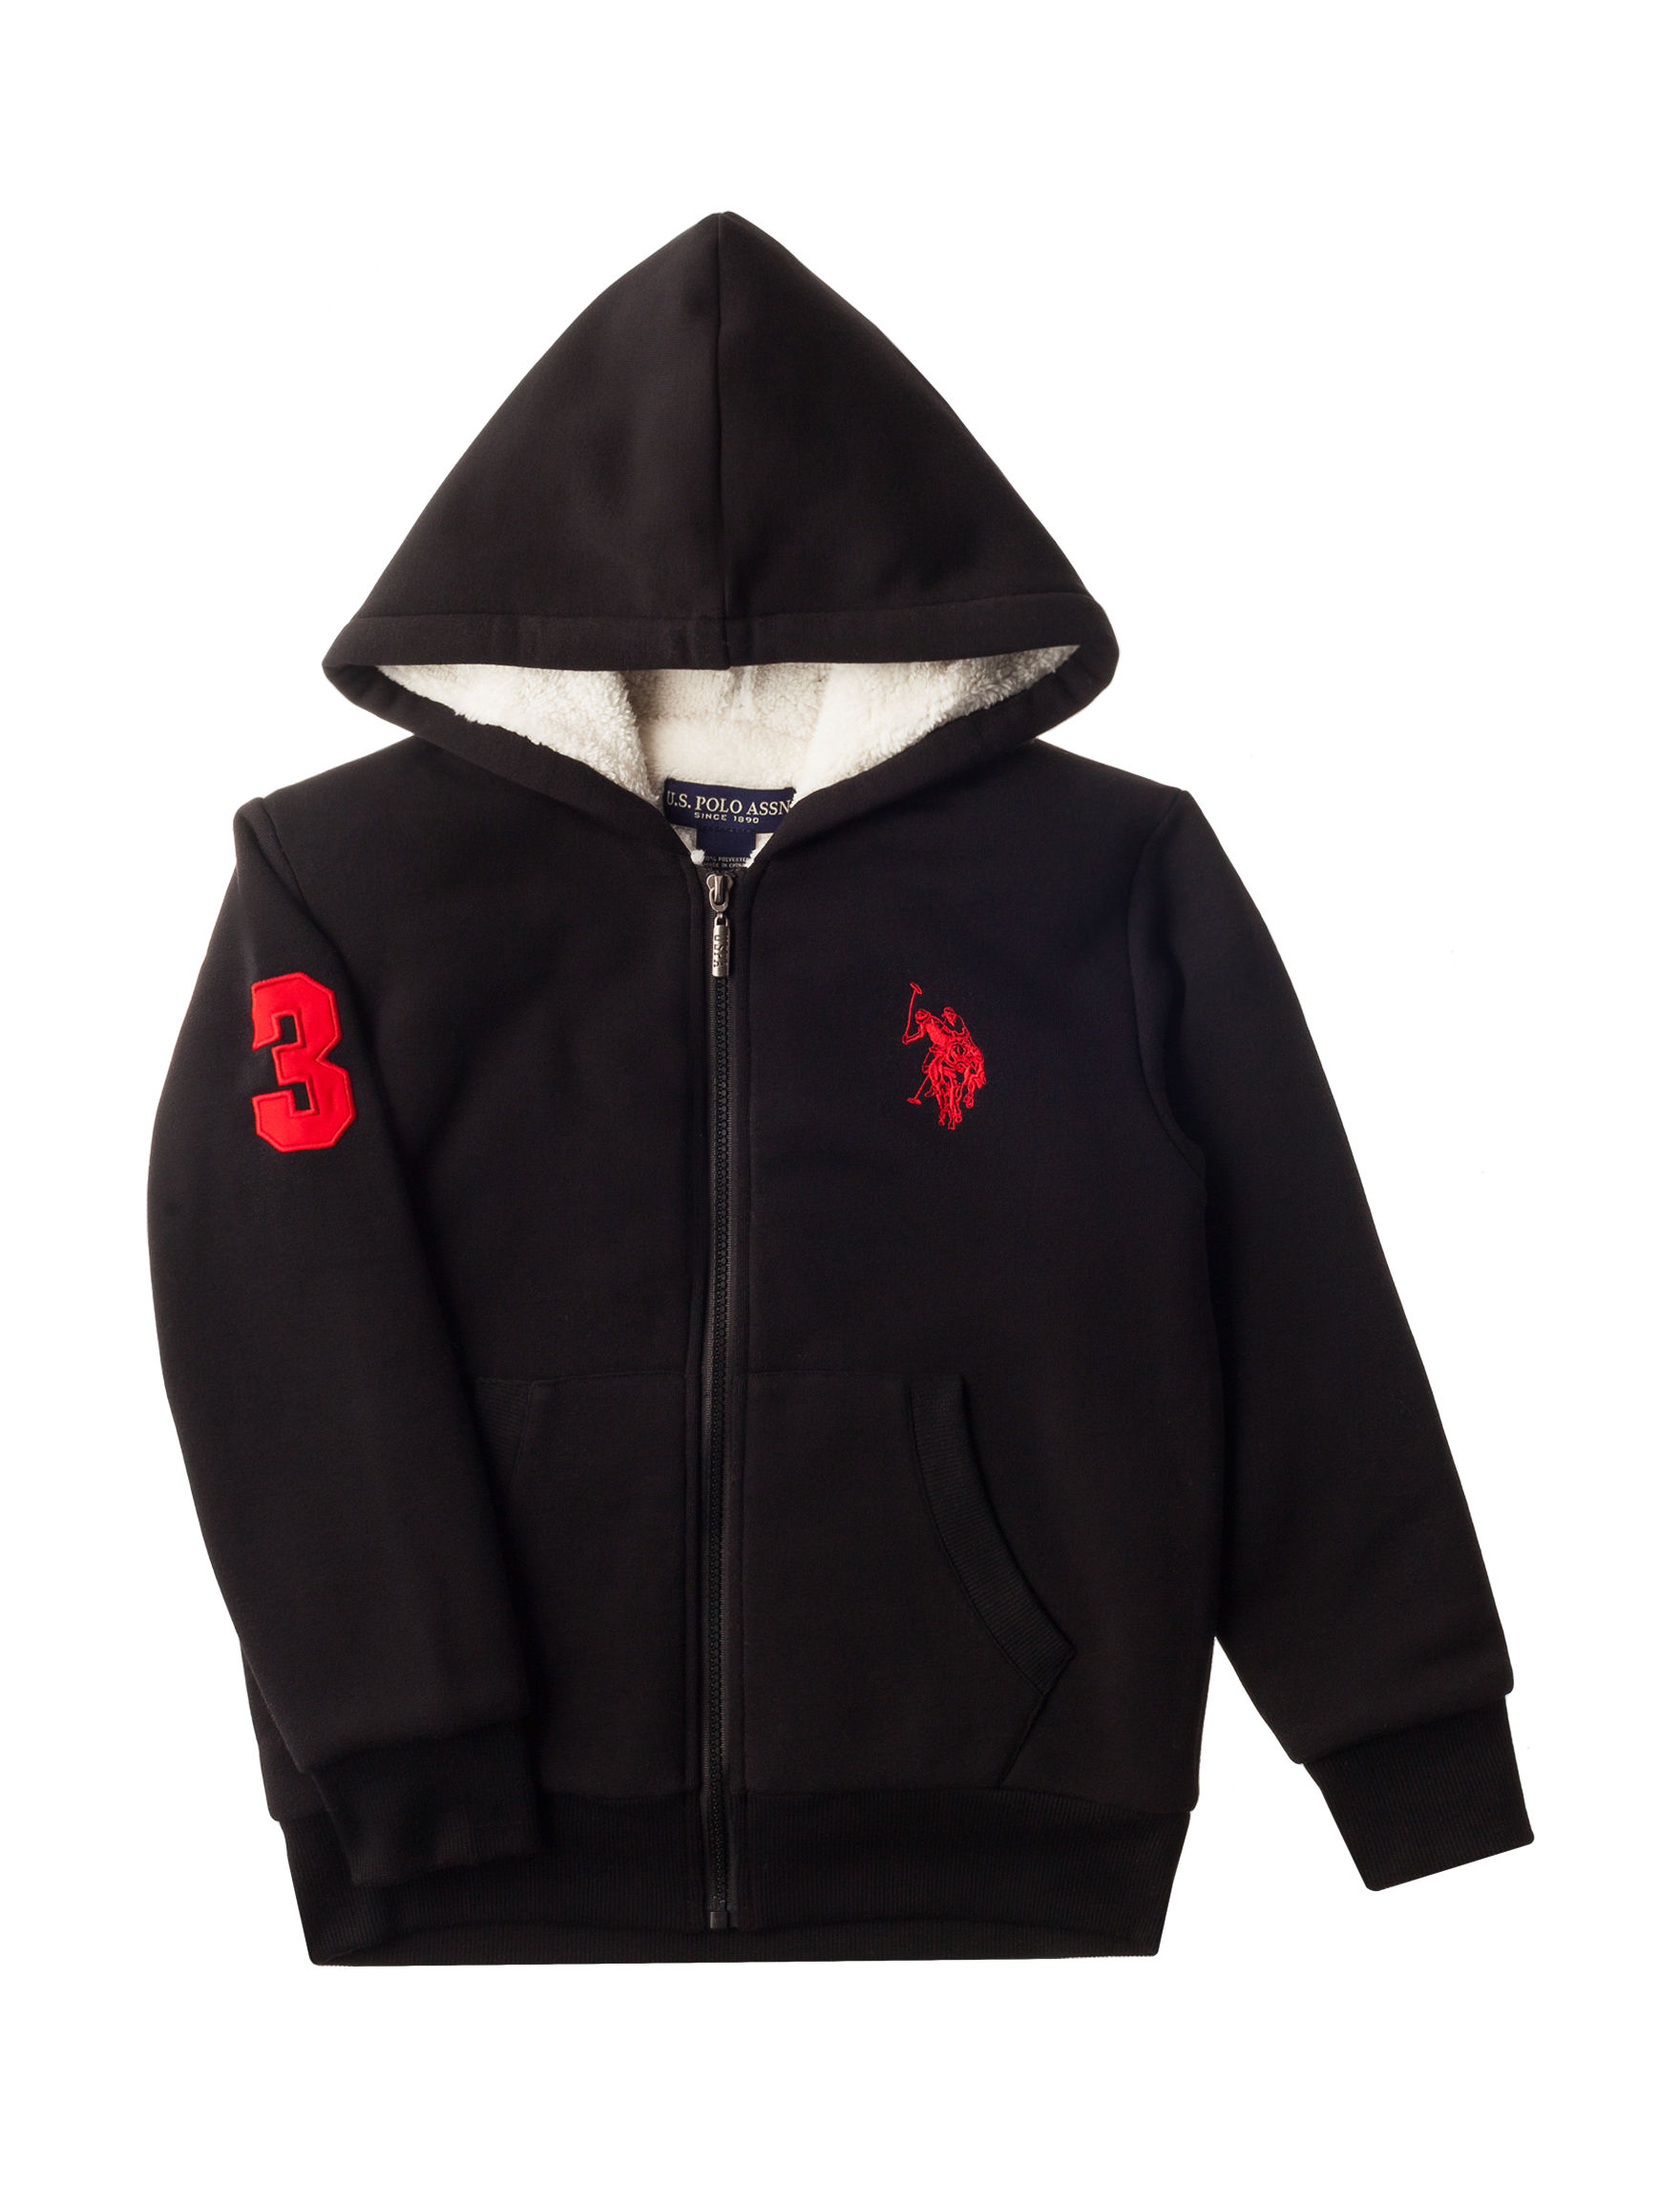 U.S. Polo Assn. Black